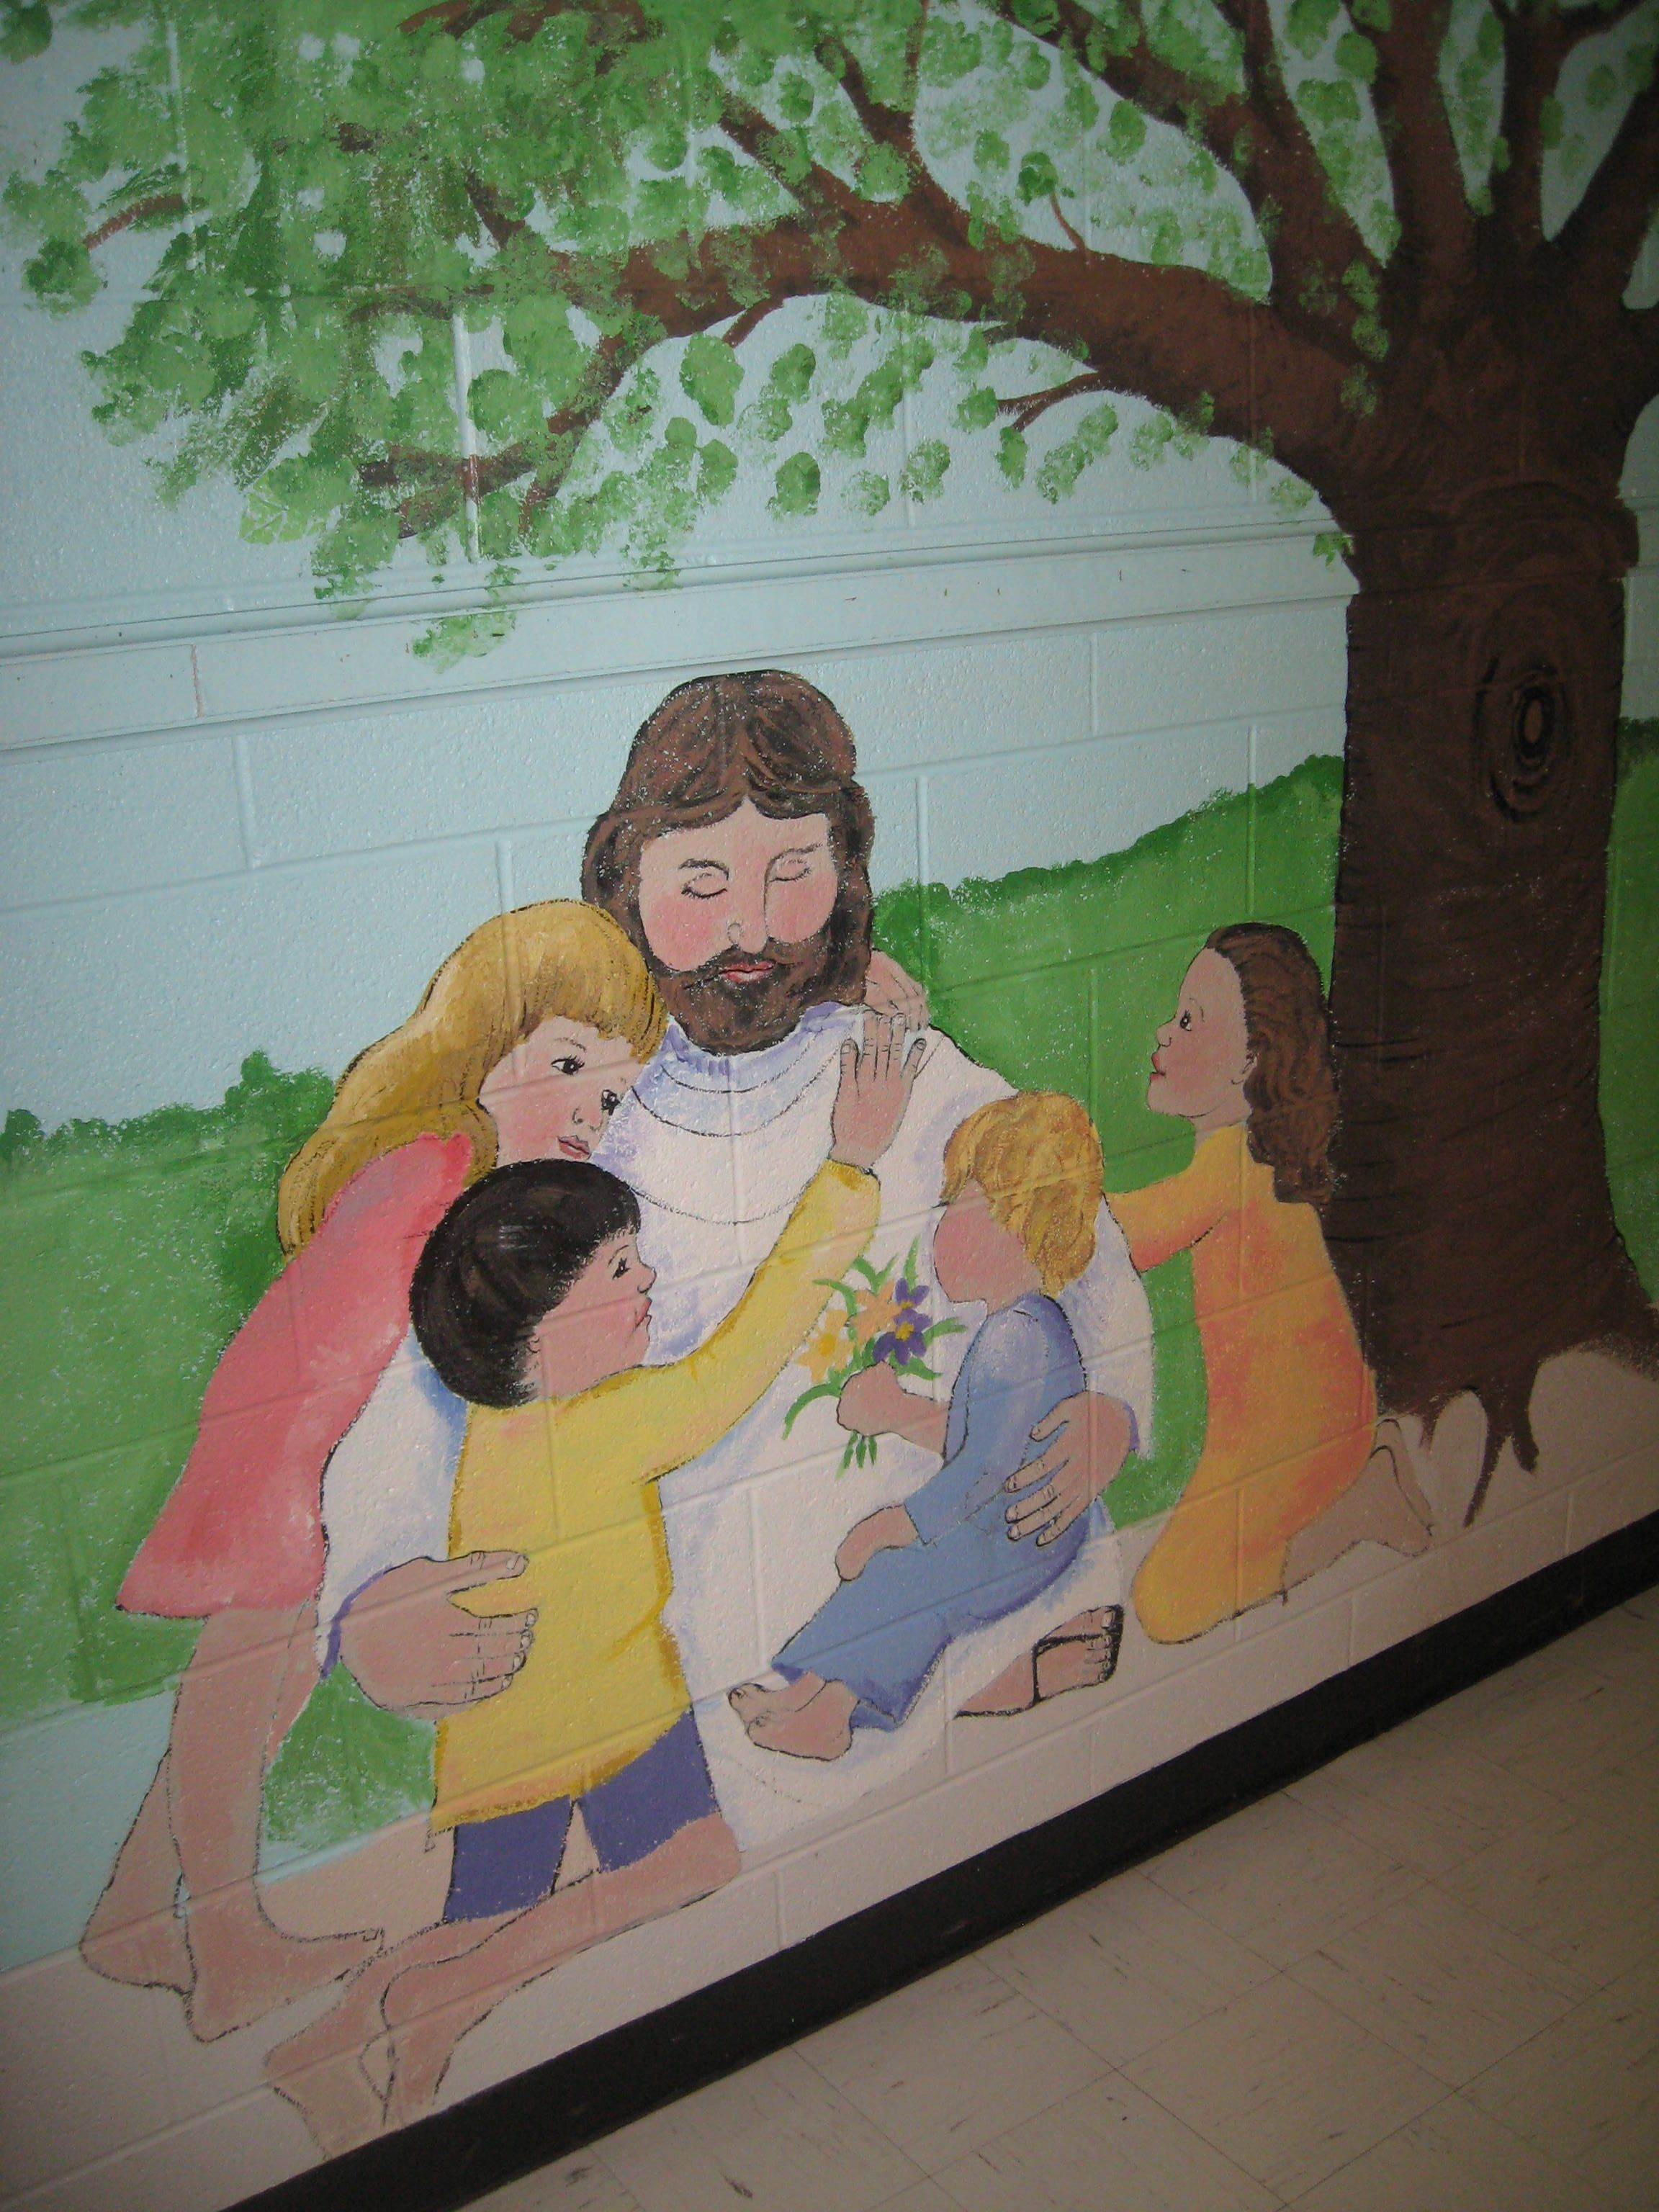 Church mural murals pinterest churches sunday for Church nursery mural